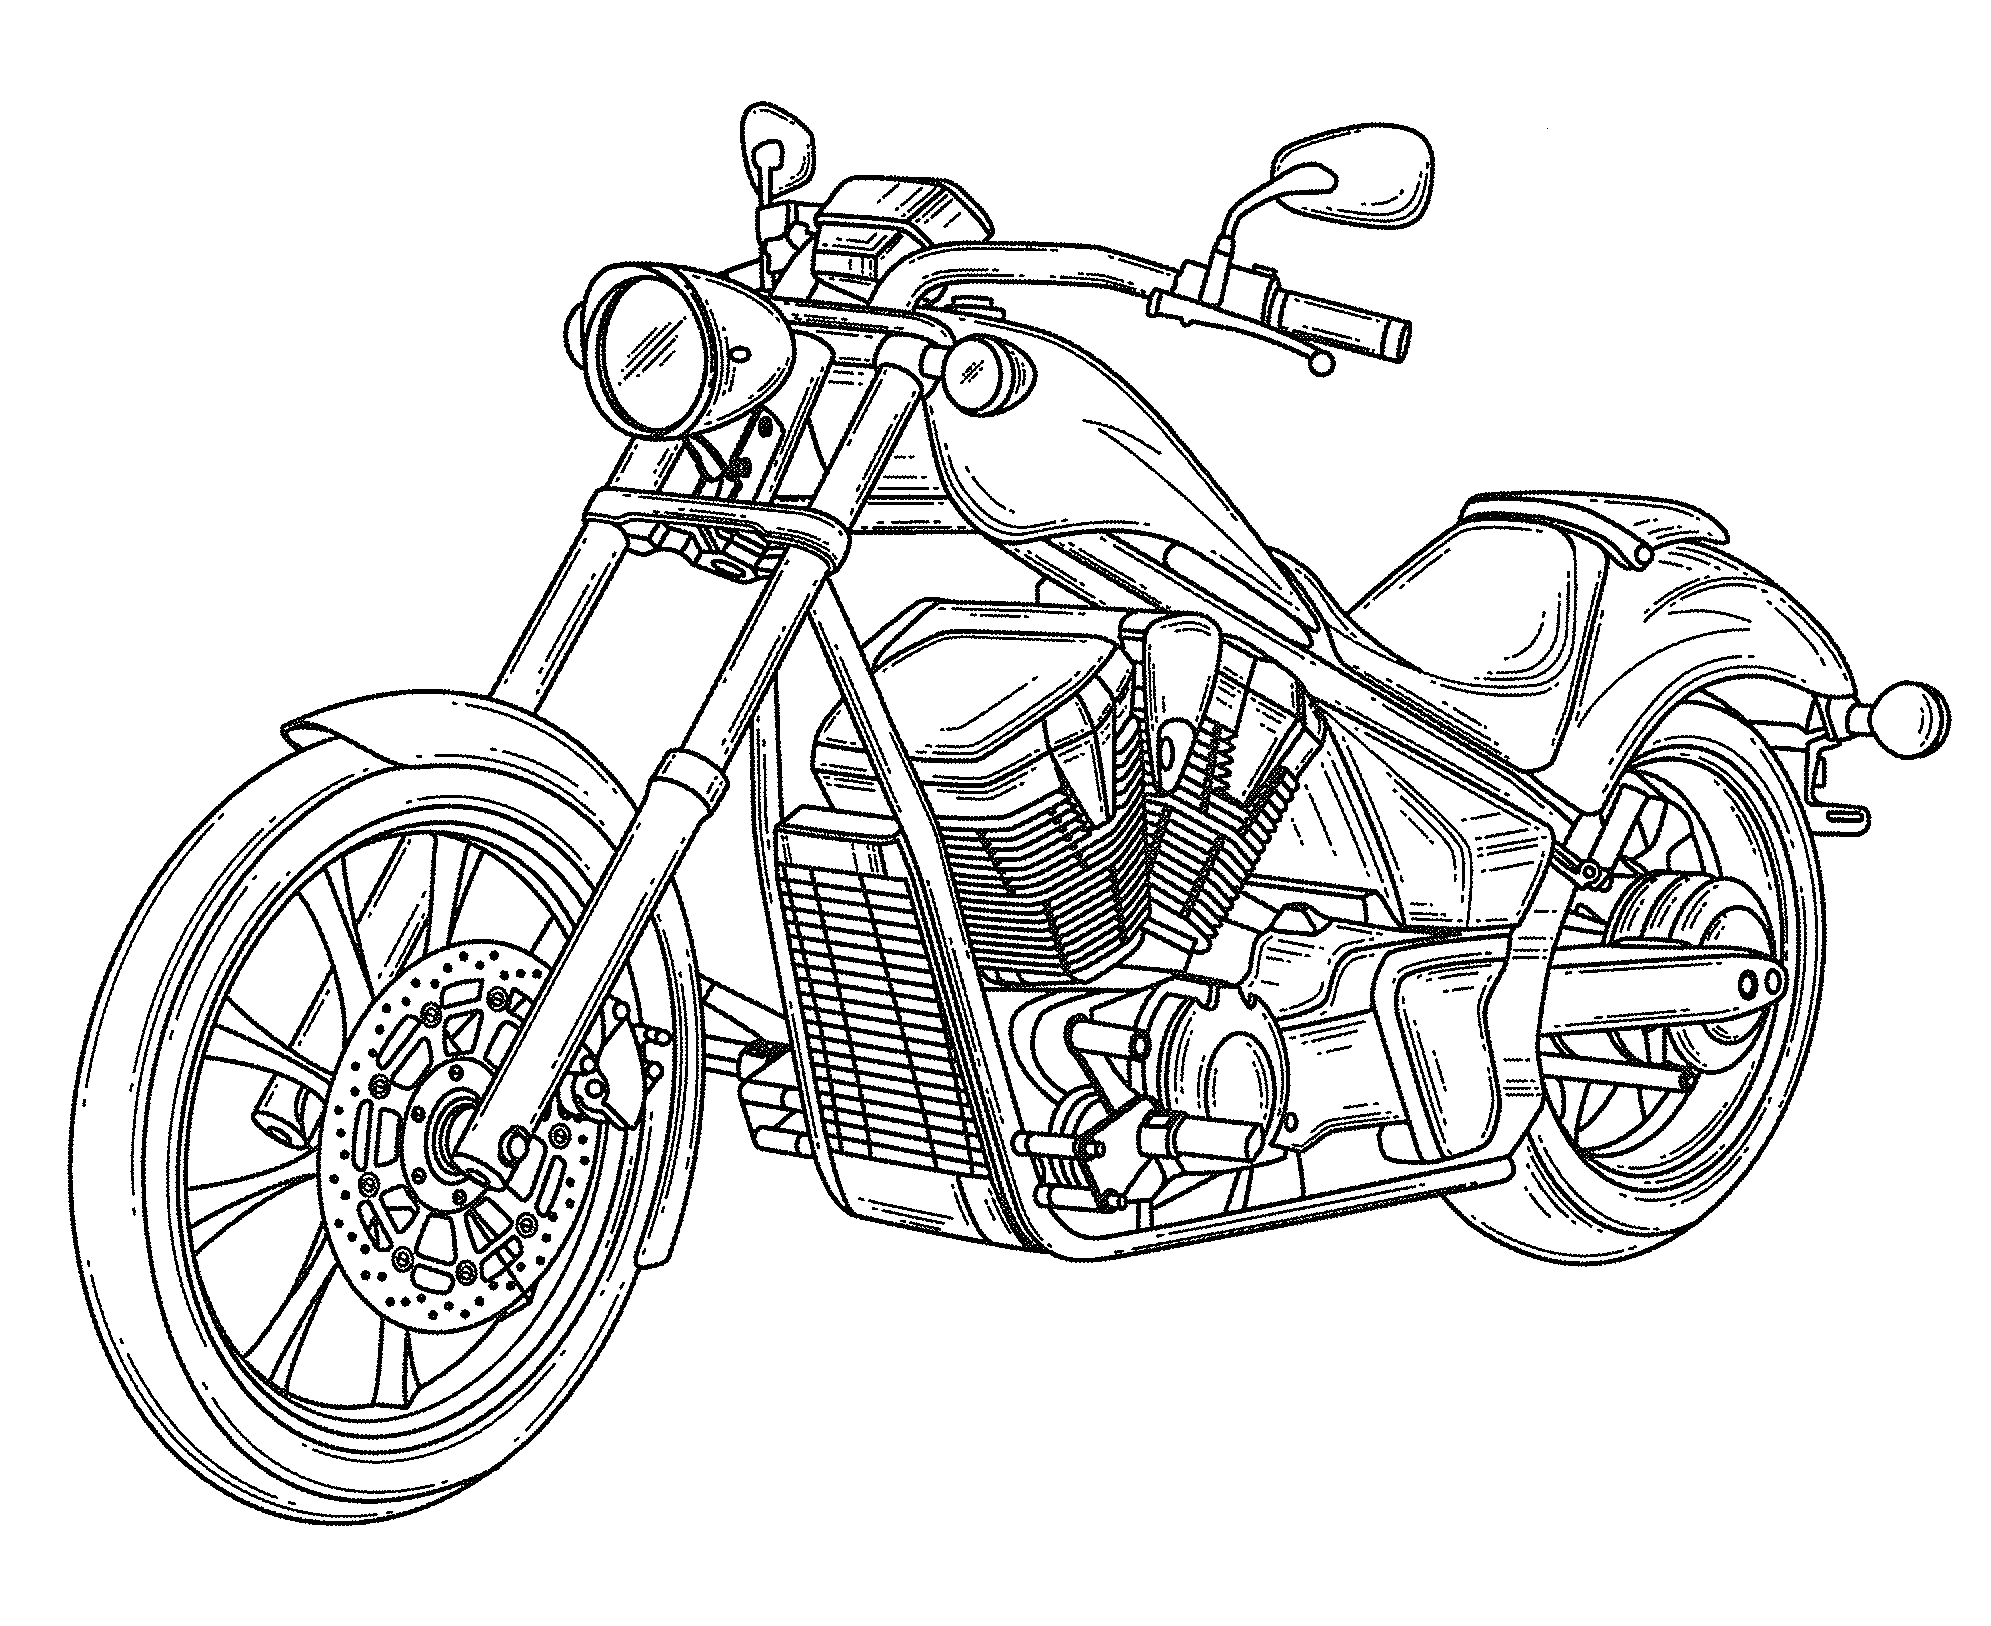 how to draw a motorcycle motorcycle drawing at getdrawings free download to motorcycle draw a how